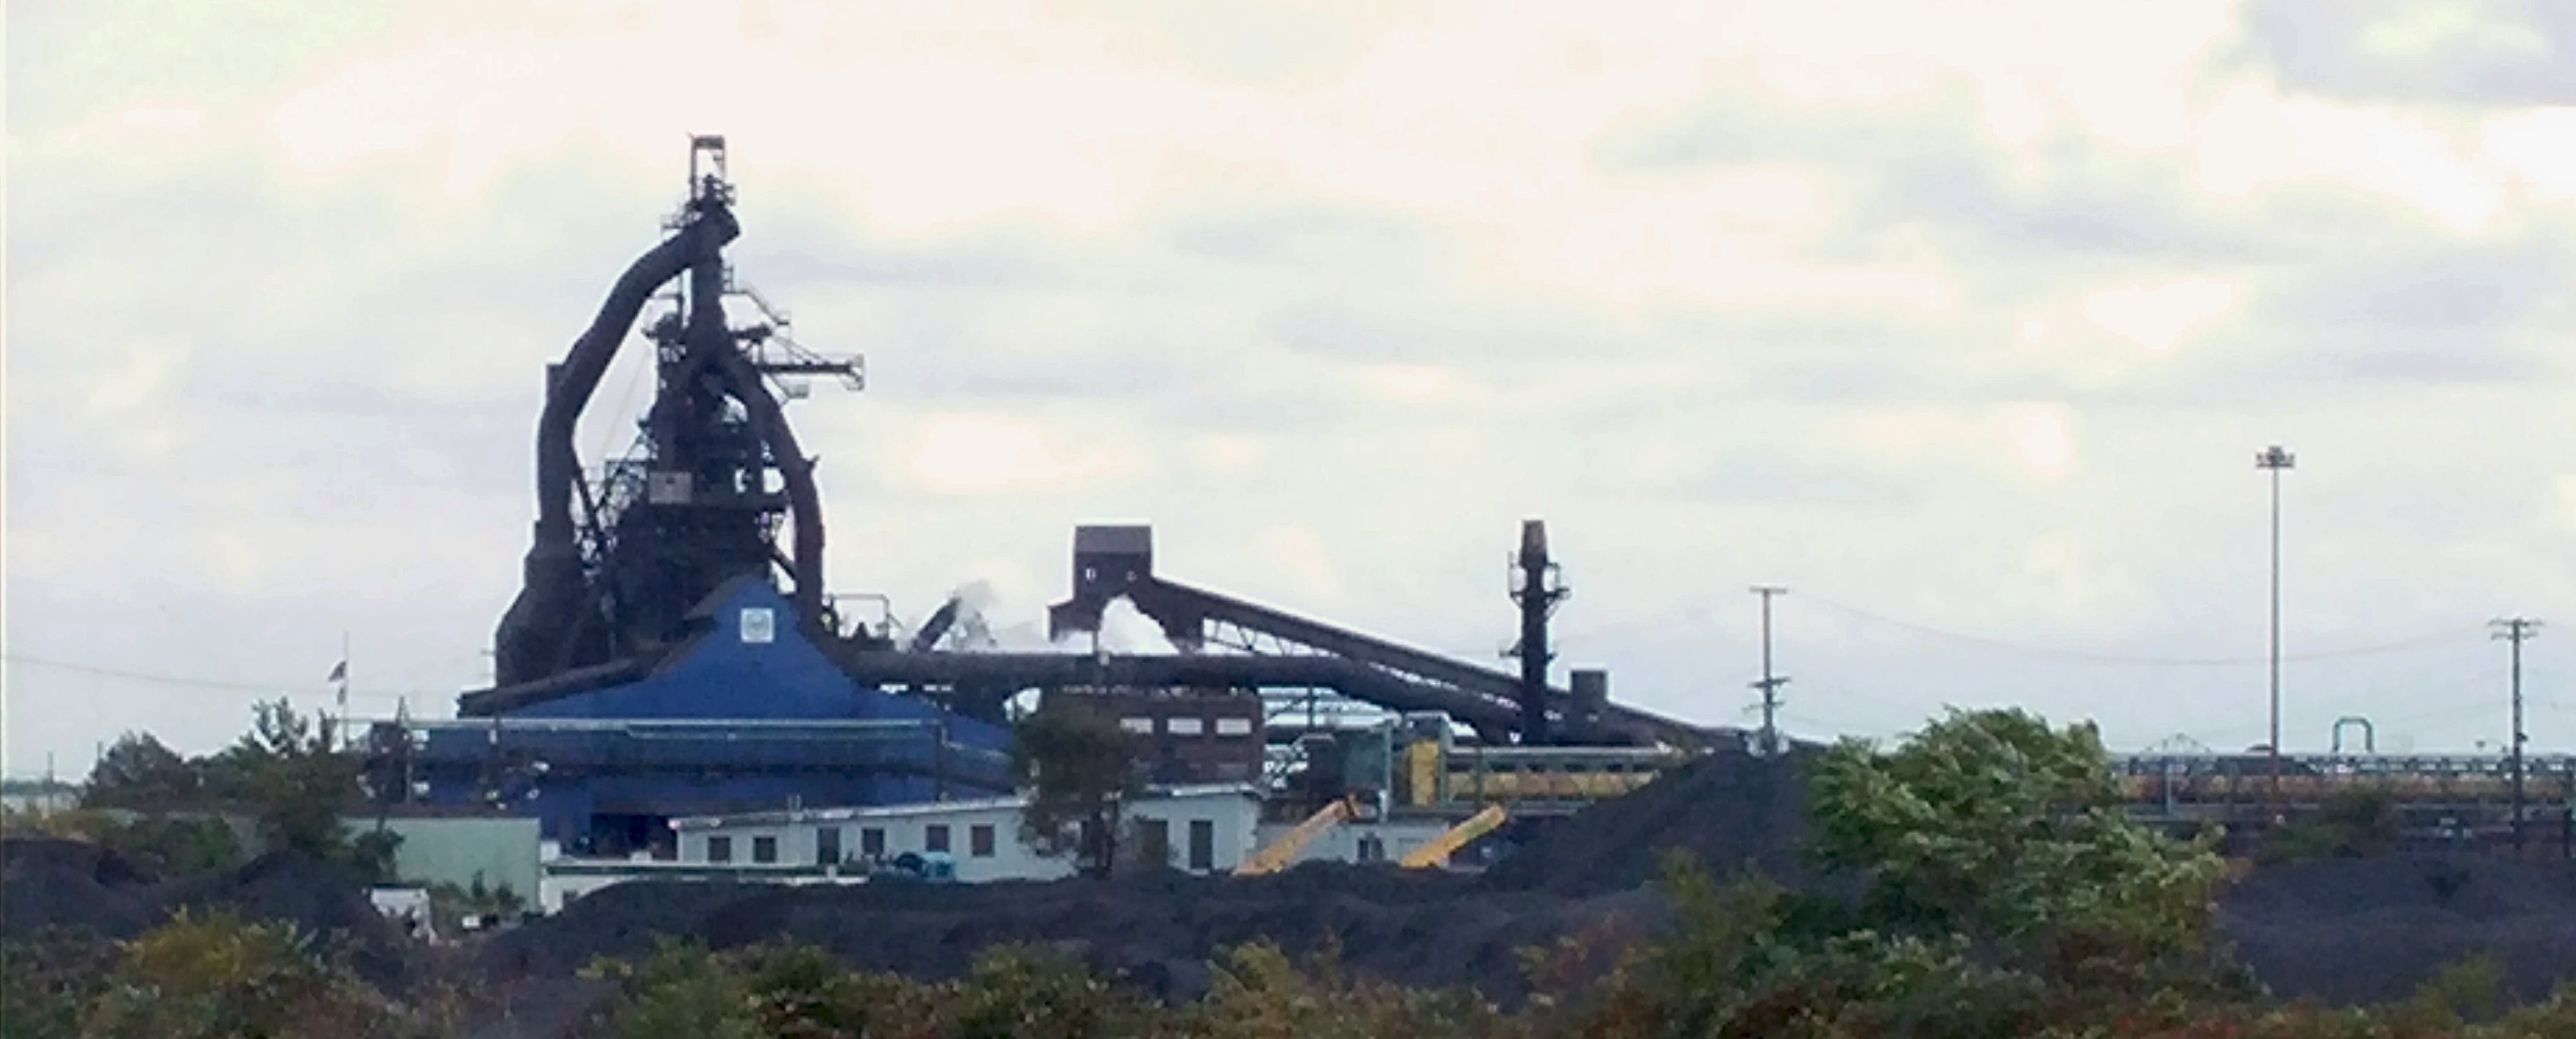 U.S. Steel Mill on Zug Island.